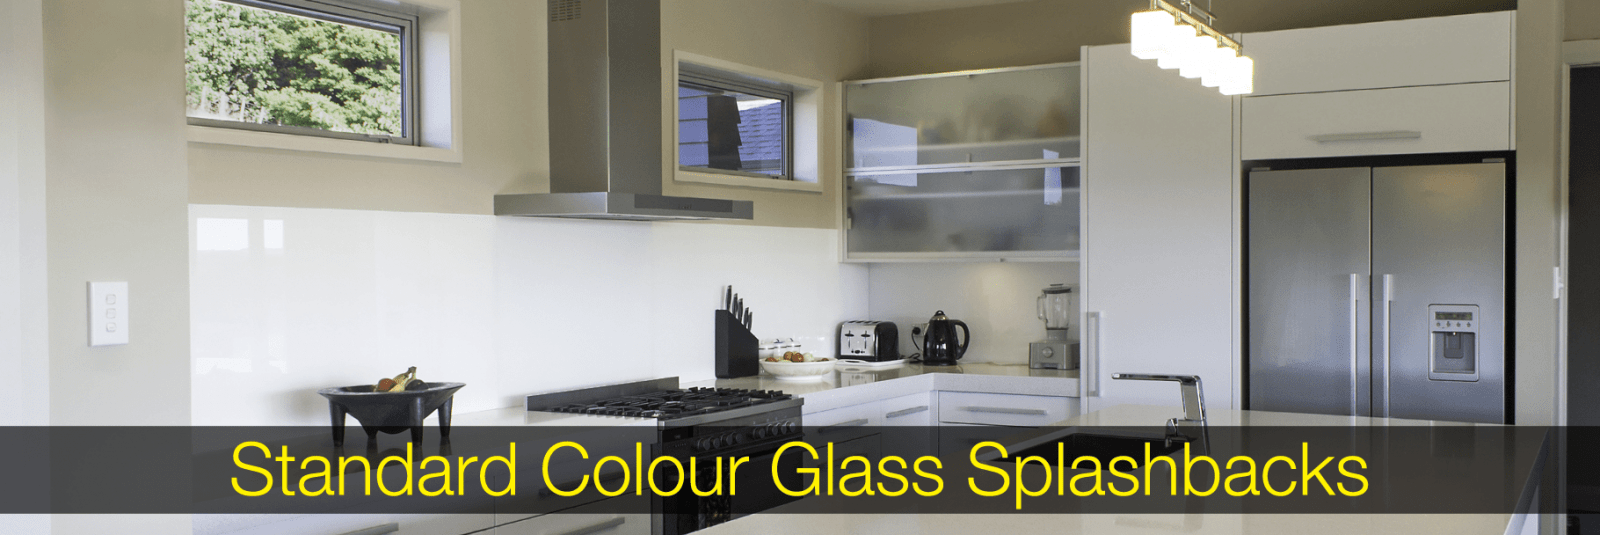 Standard Colour Glass Splashbacks